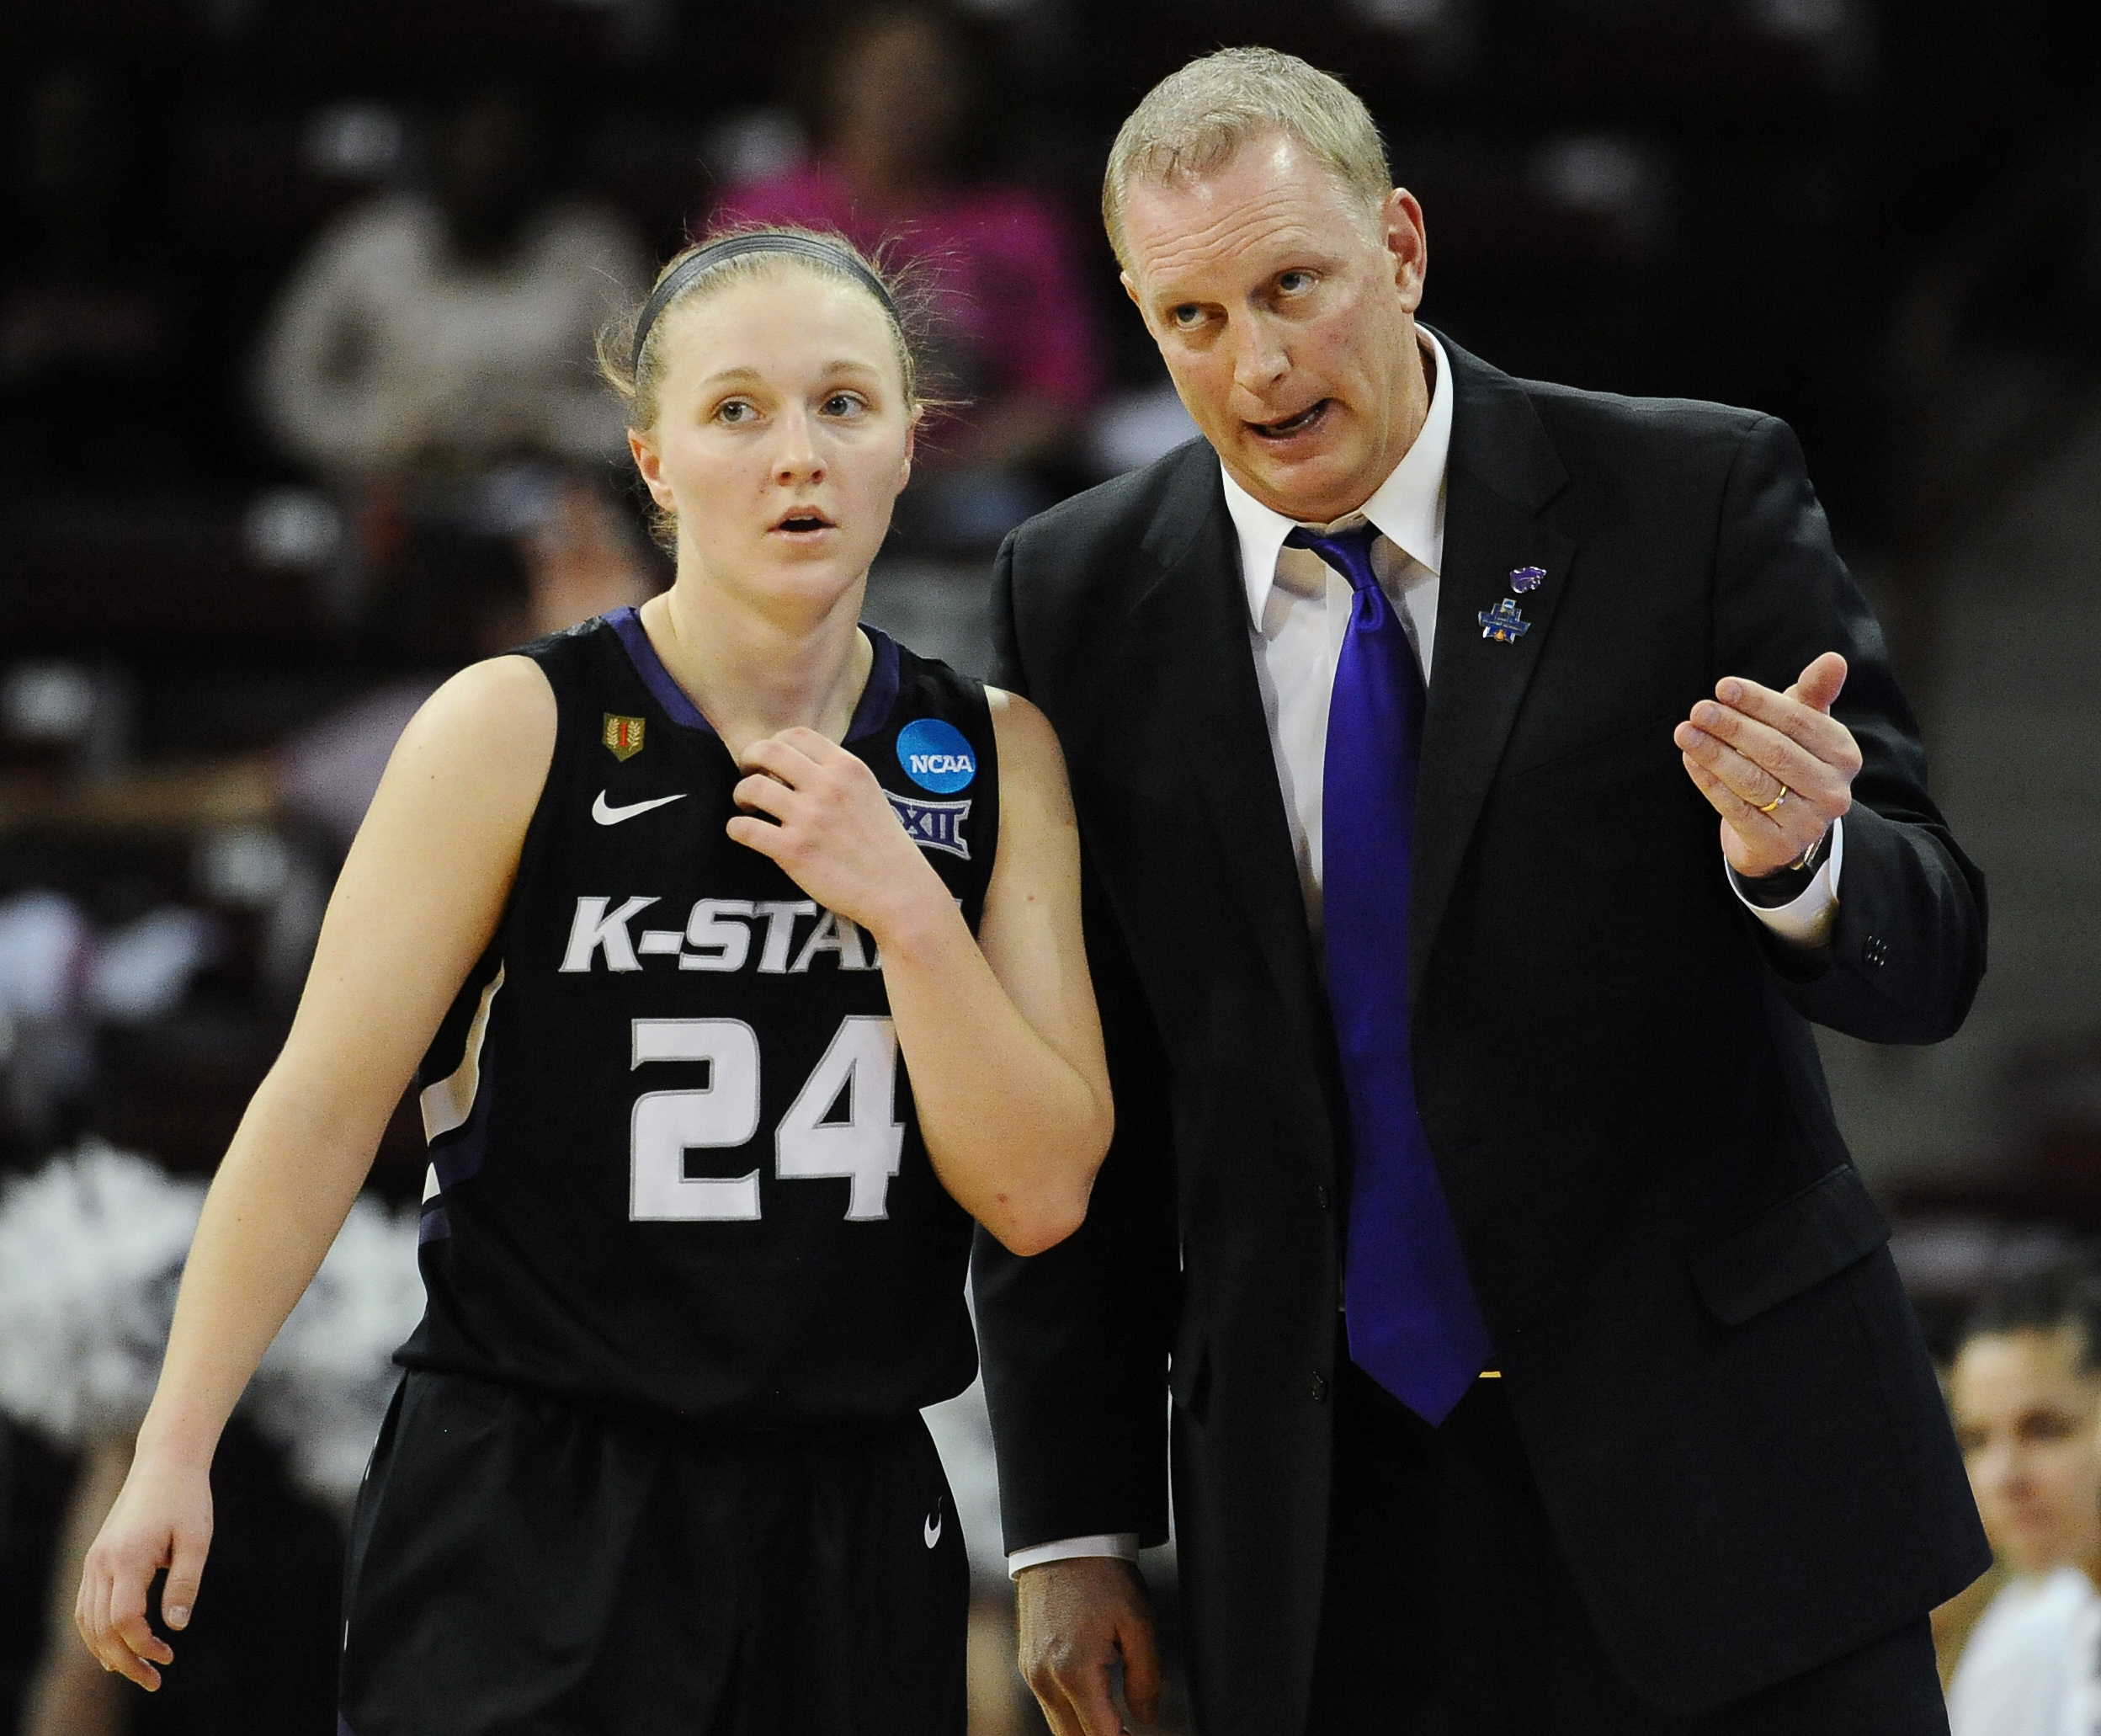 Kansas State head coach Jeff Mittie, right, talks with player Kindred Wesemann during a first-round women's college basketball game in the NCAA Tournament on Friday, March 18, 2016, in Columbia, S.C.  (AP Photo/Rainier Ehrhardt)